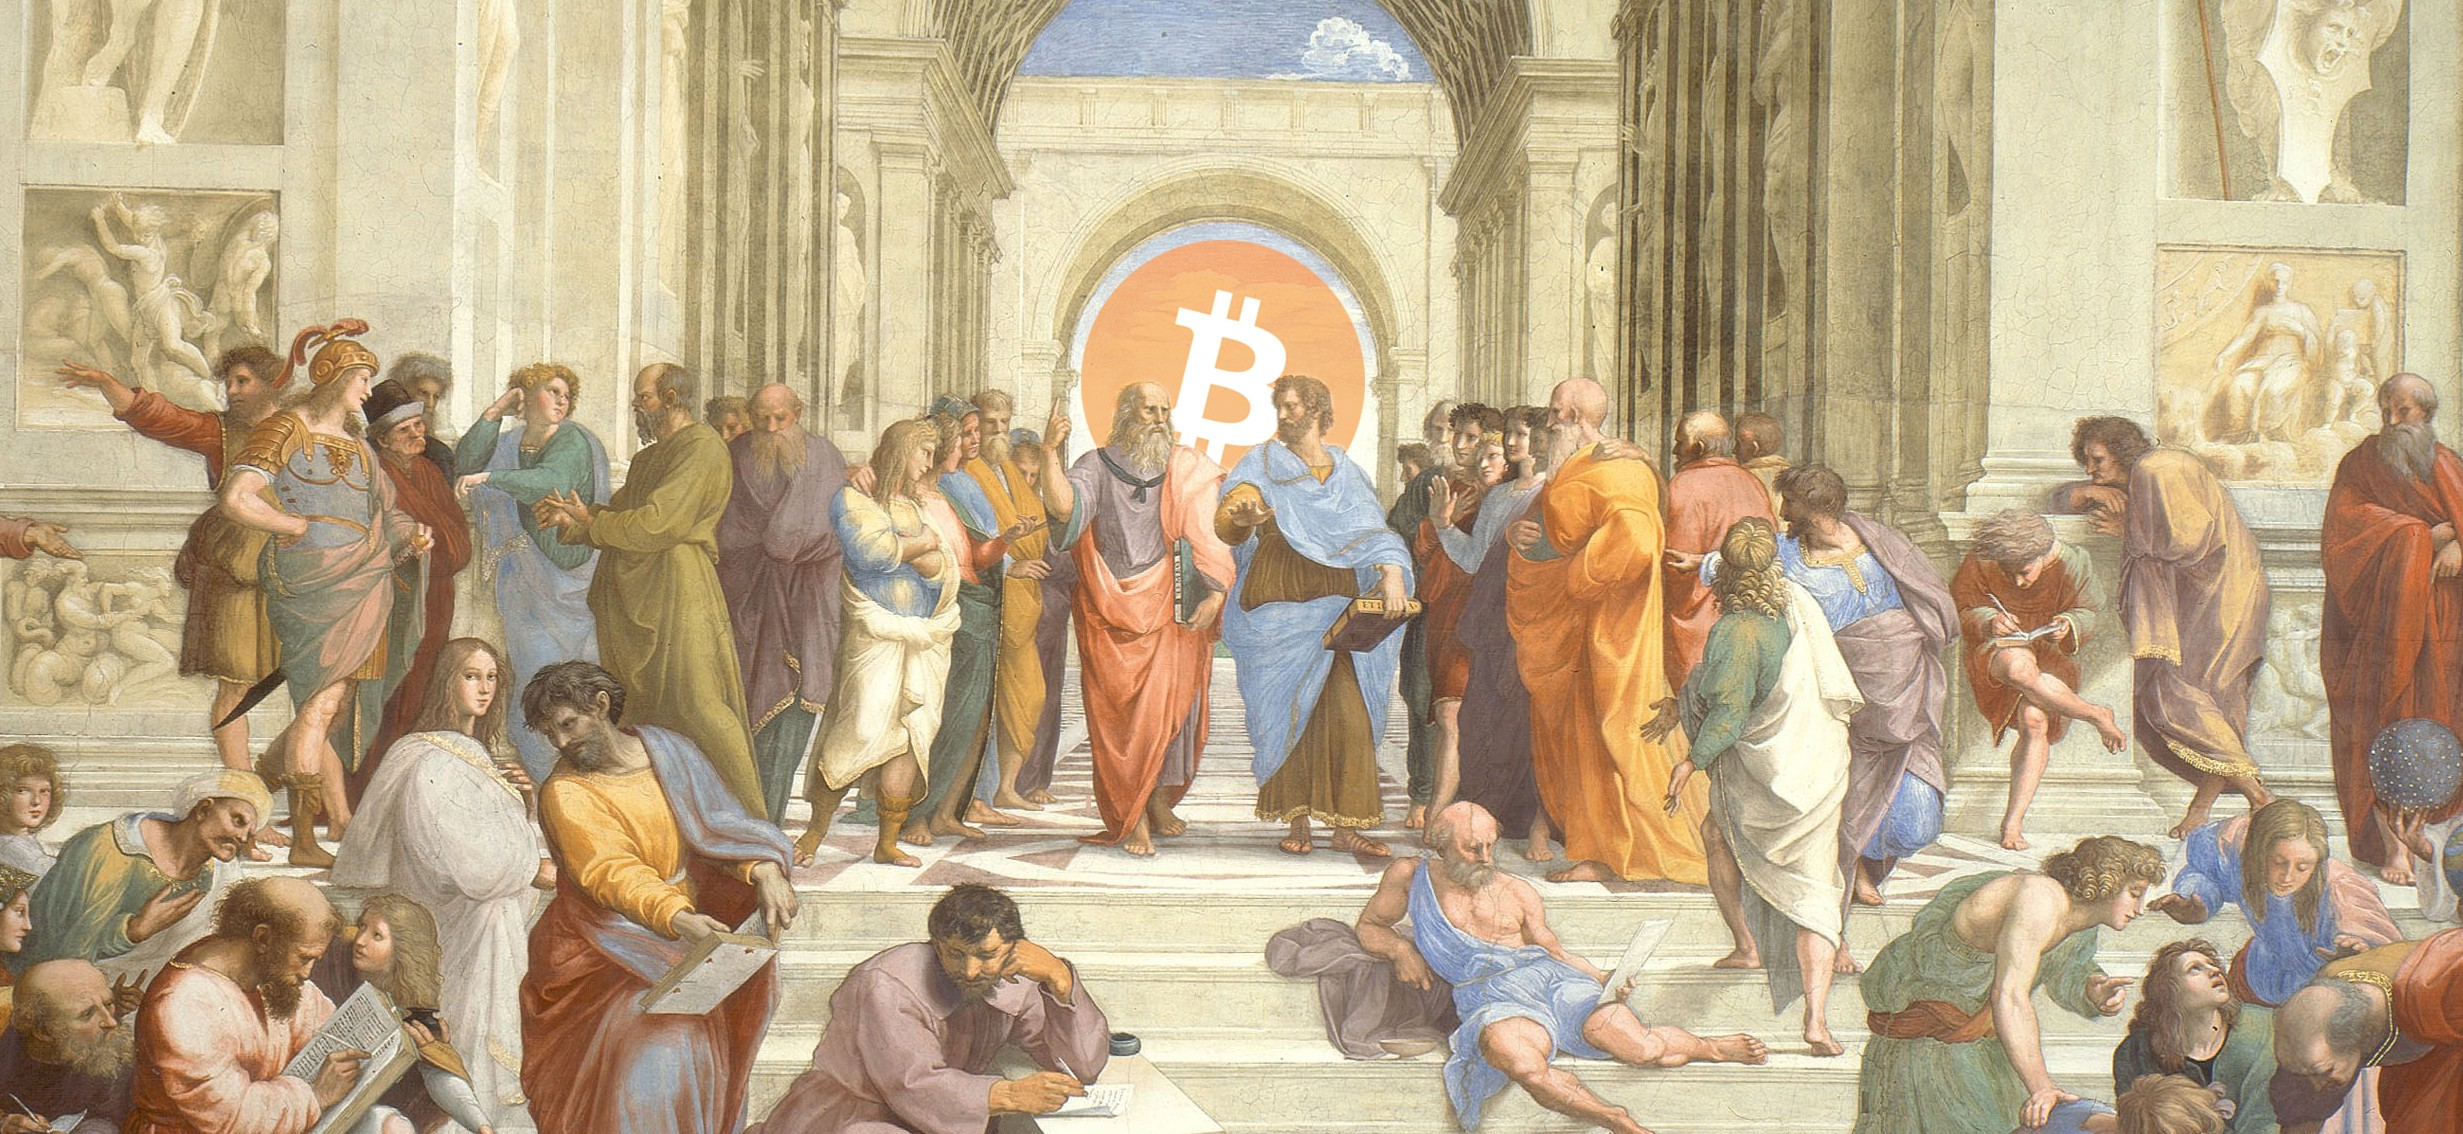 header romans with bitcoin